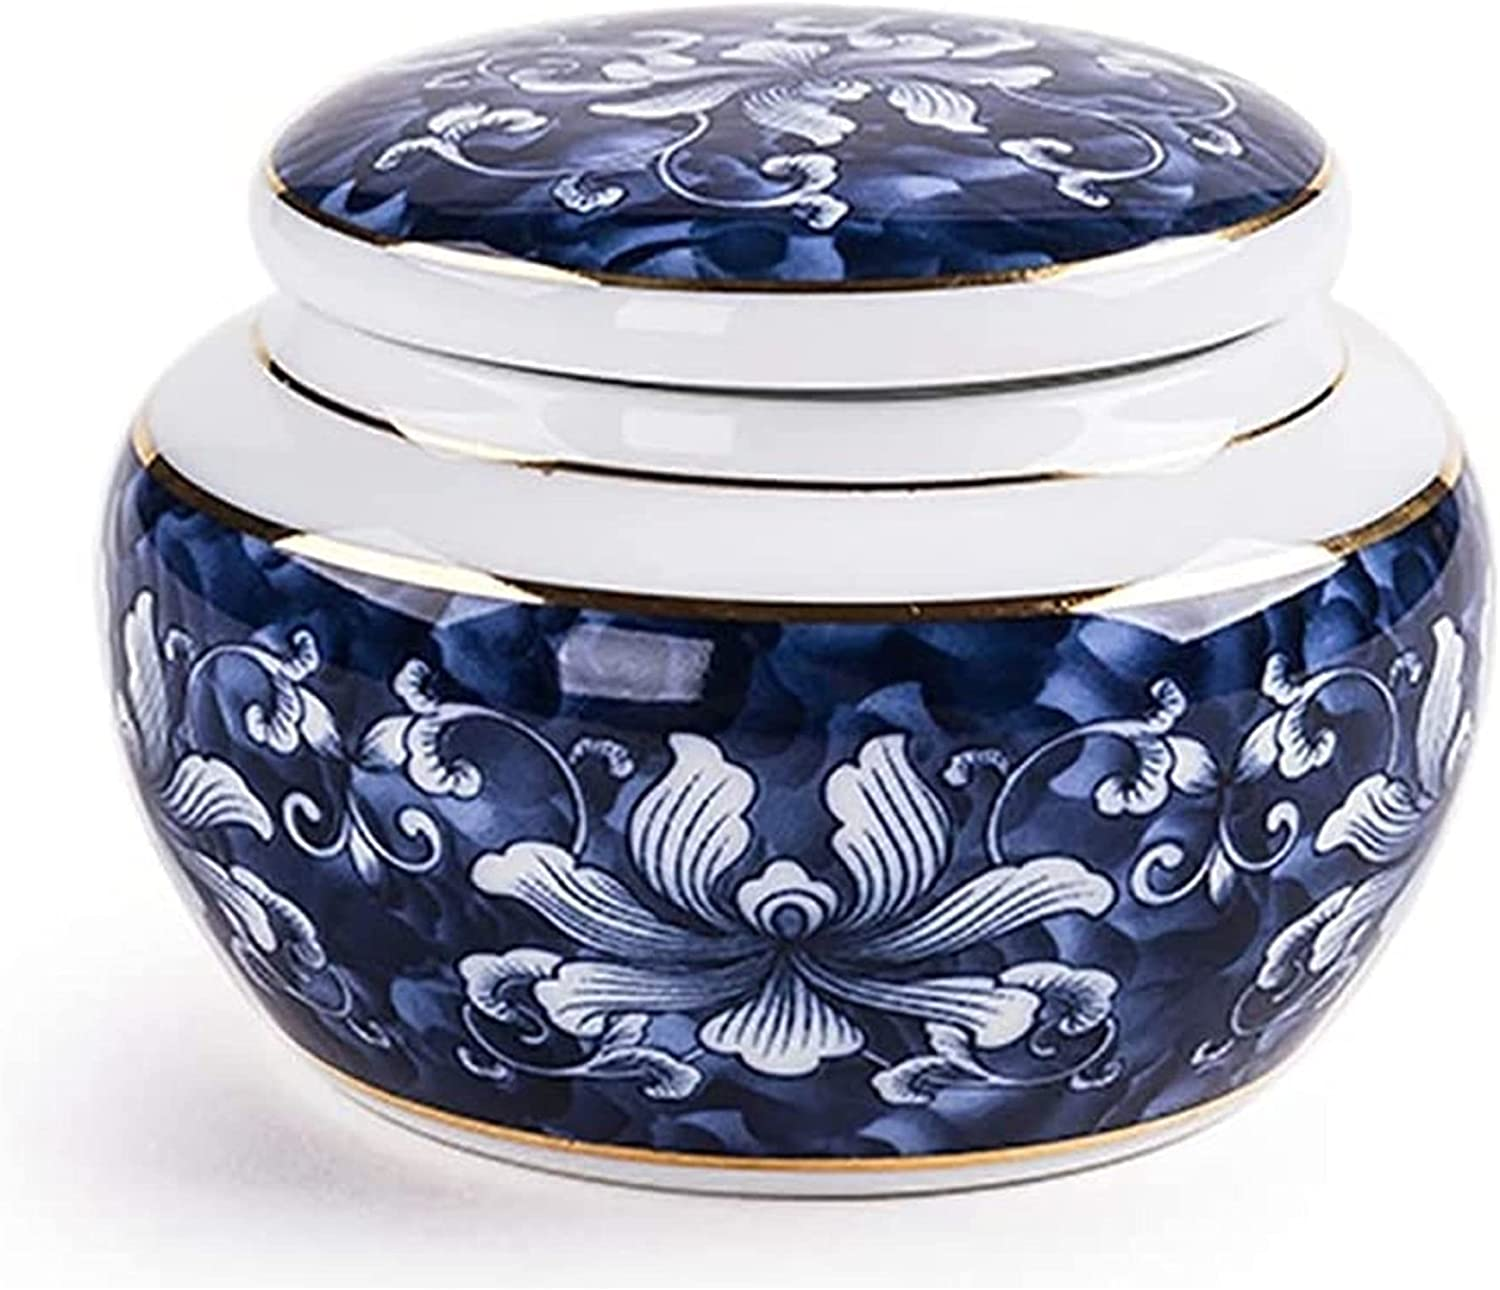 sold Indianapolis Mall out MTFZD Cremation Urn for Ashes Pet Handcraf Funeral Small